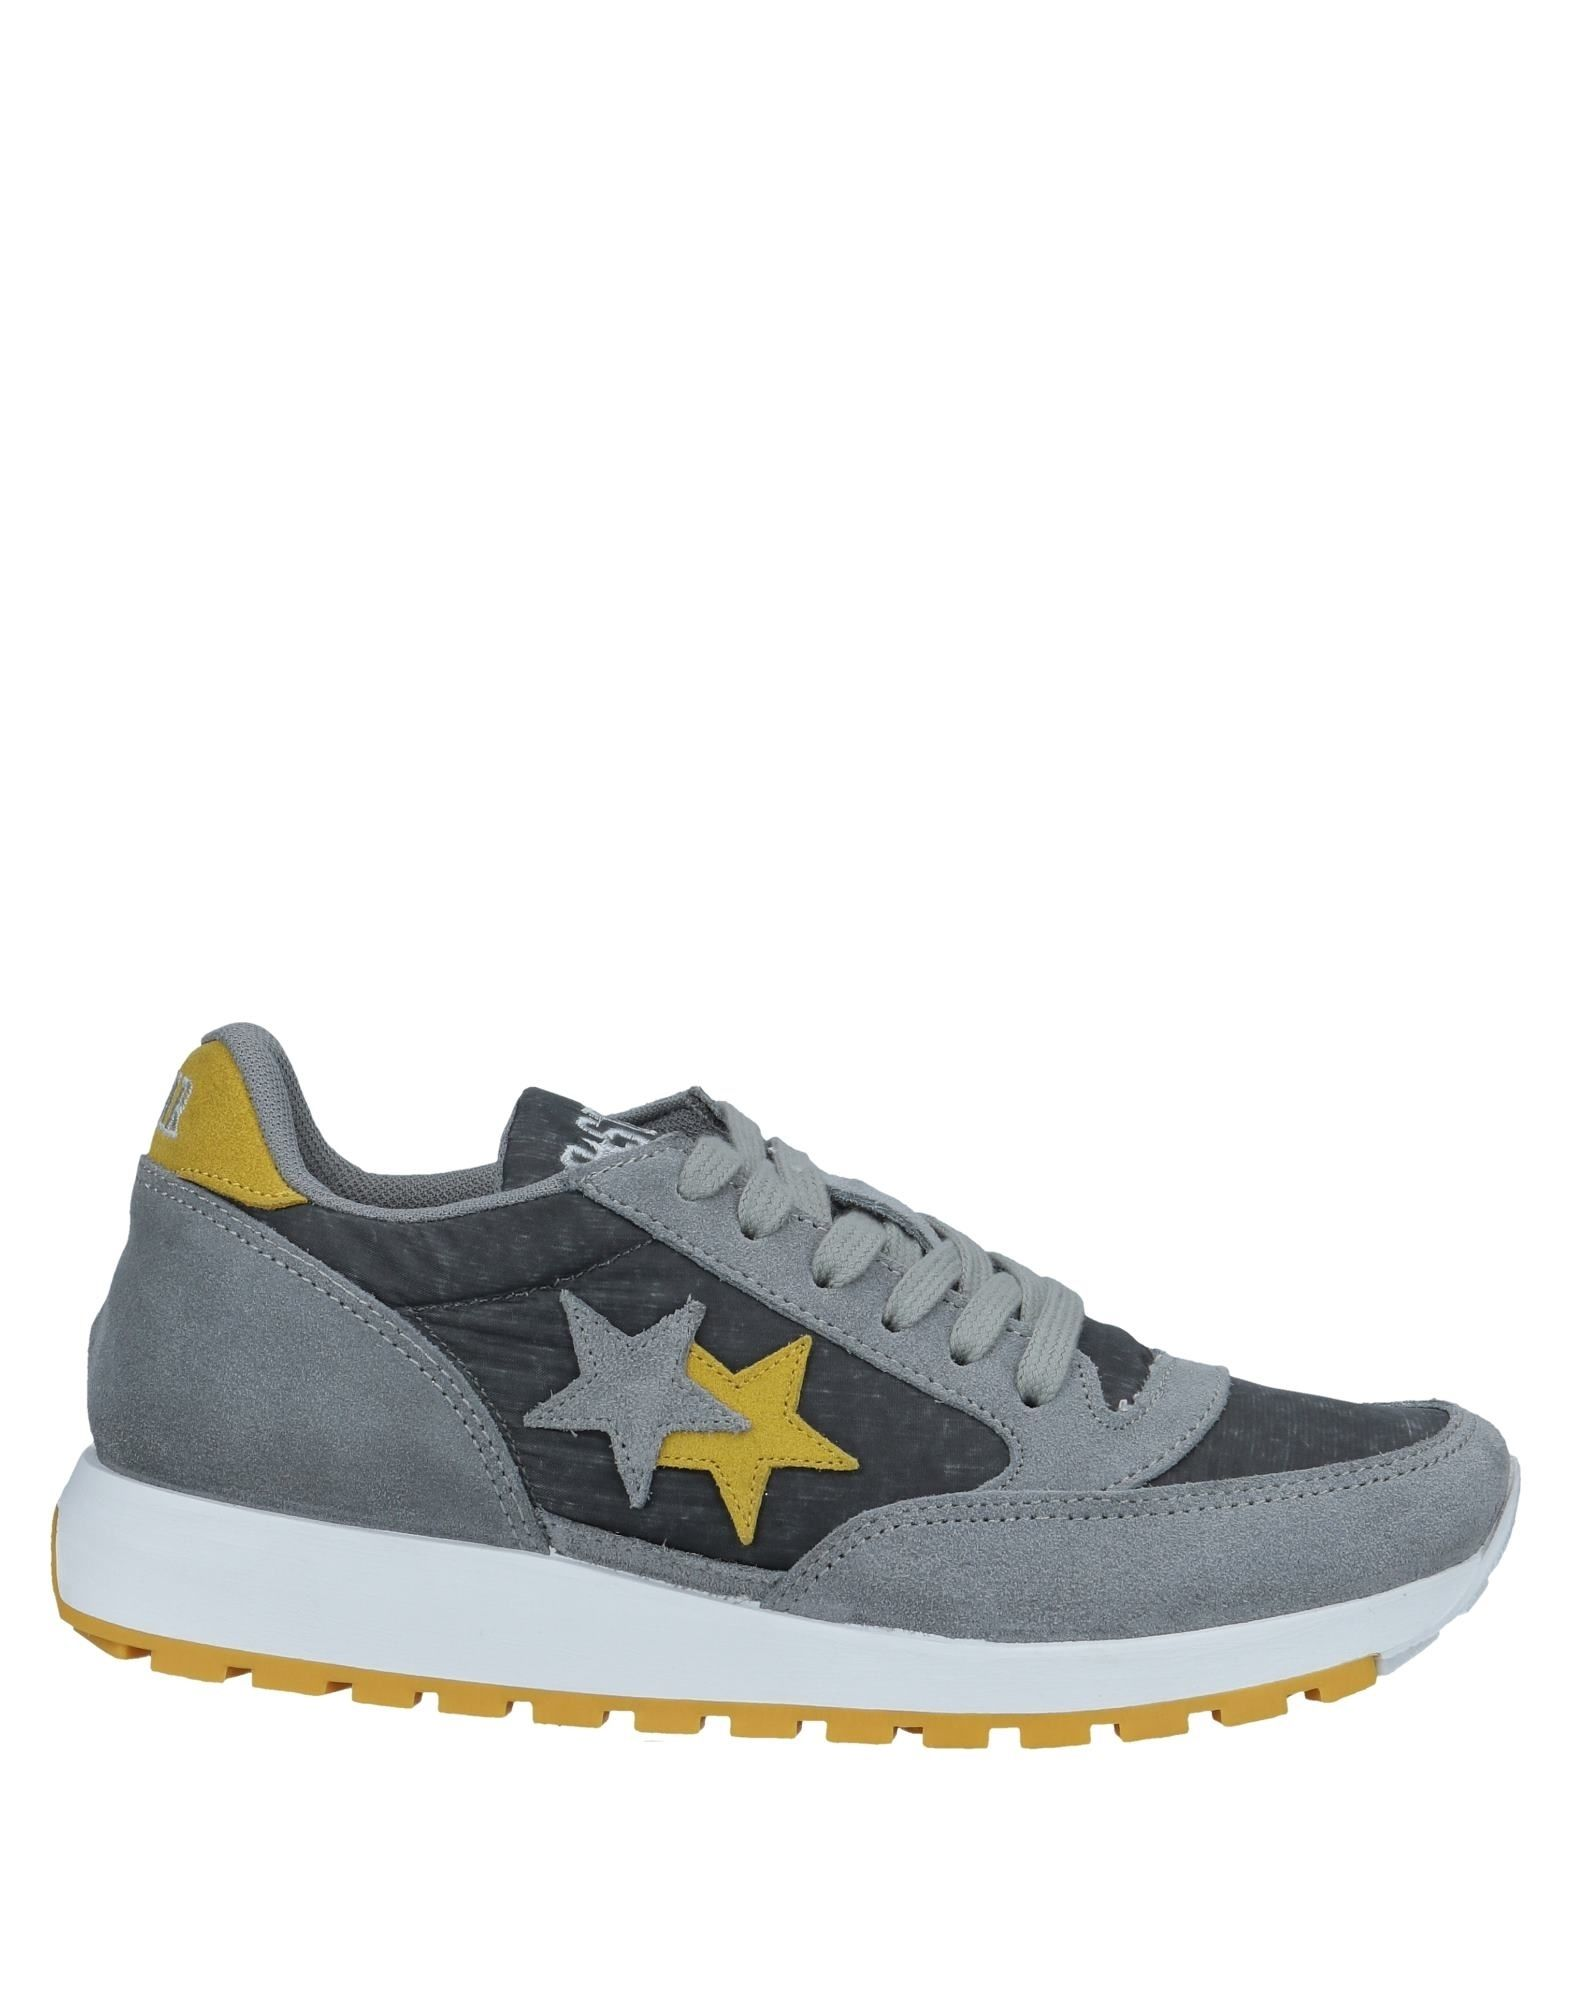 2Star  Sneakers - Women 2Star Sneakers online on  2Star United Kingdom - 11548315OI 4ac011